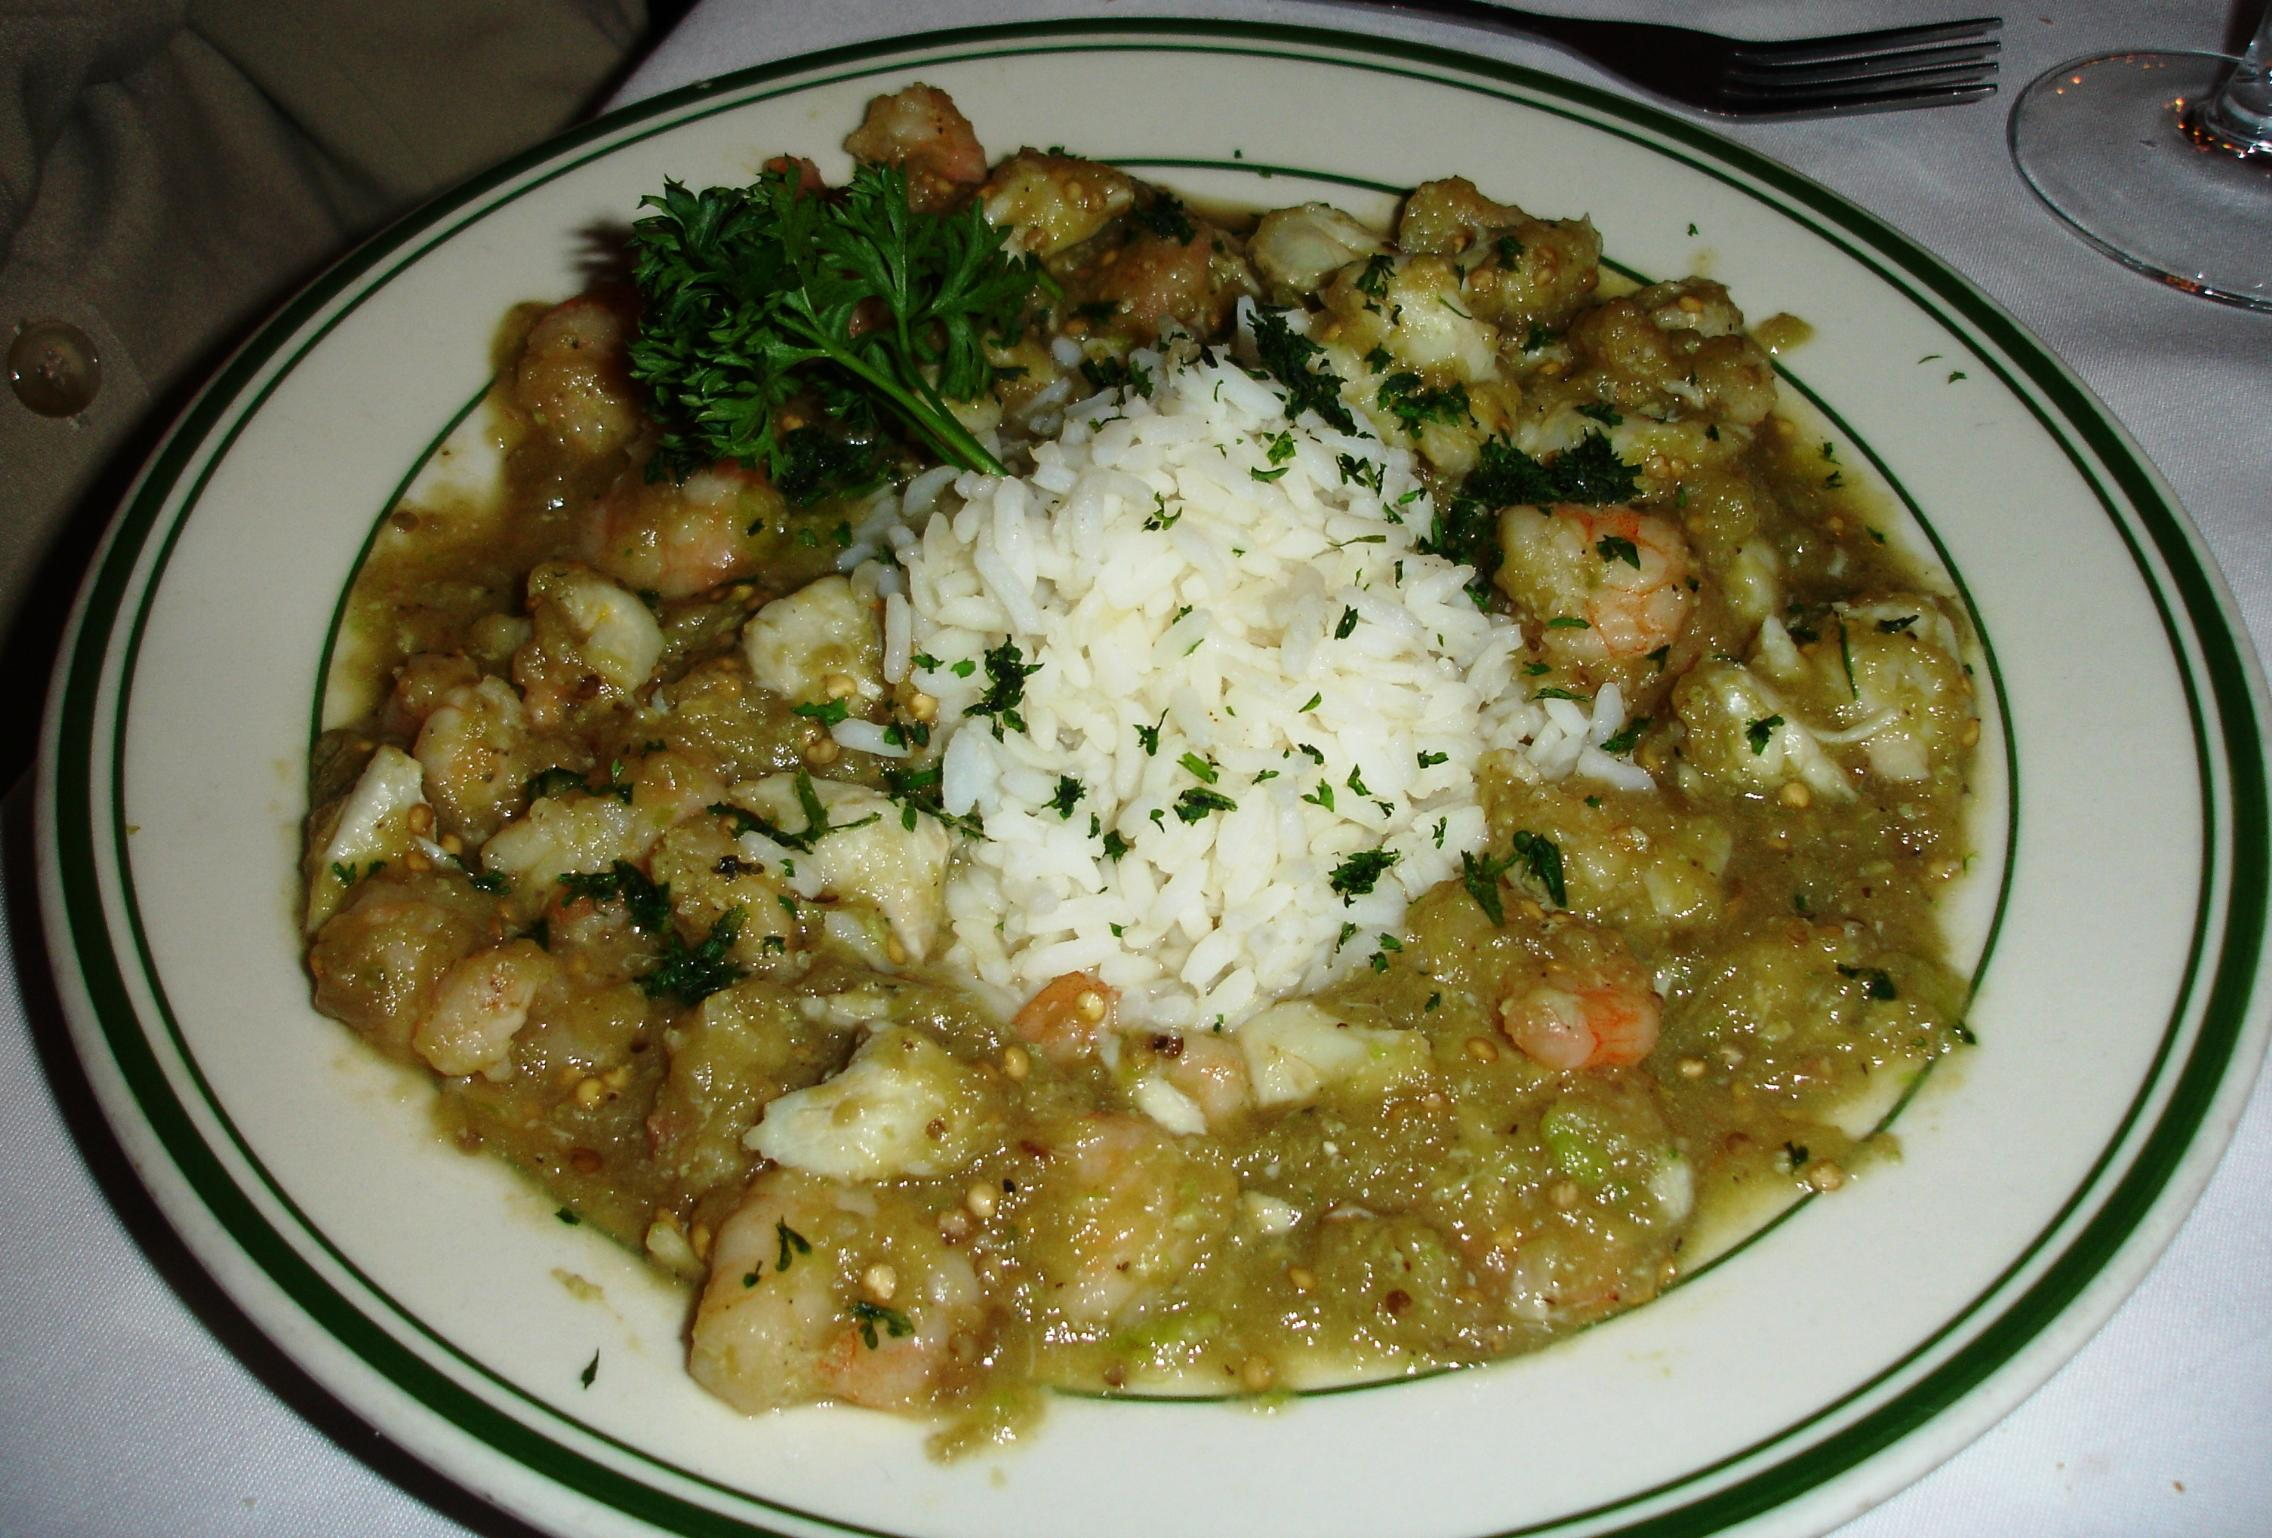 Eggplant combines with seafood beautifully in this etouffee of crab and shrimp.